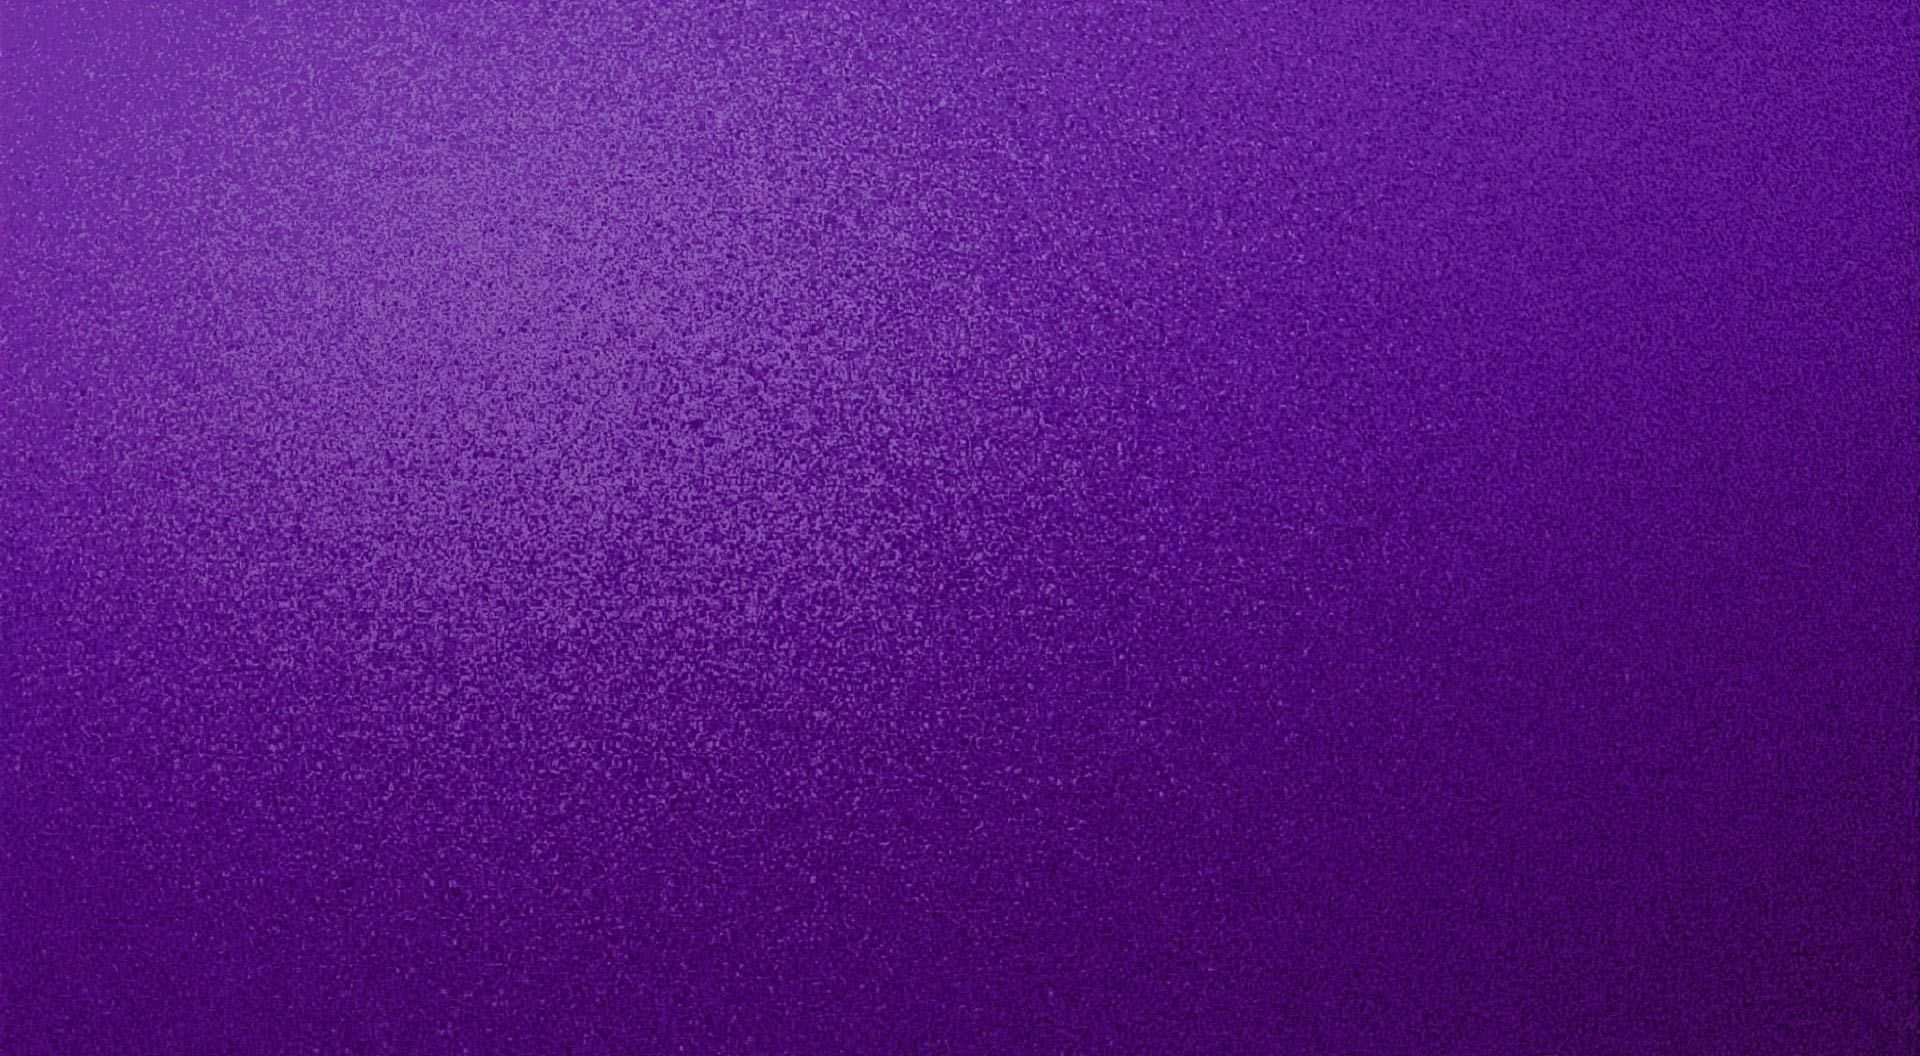 20 Spendid Purple Backgrounds for Download 1920x1056